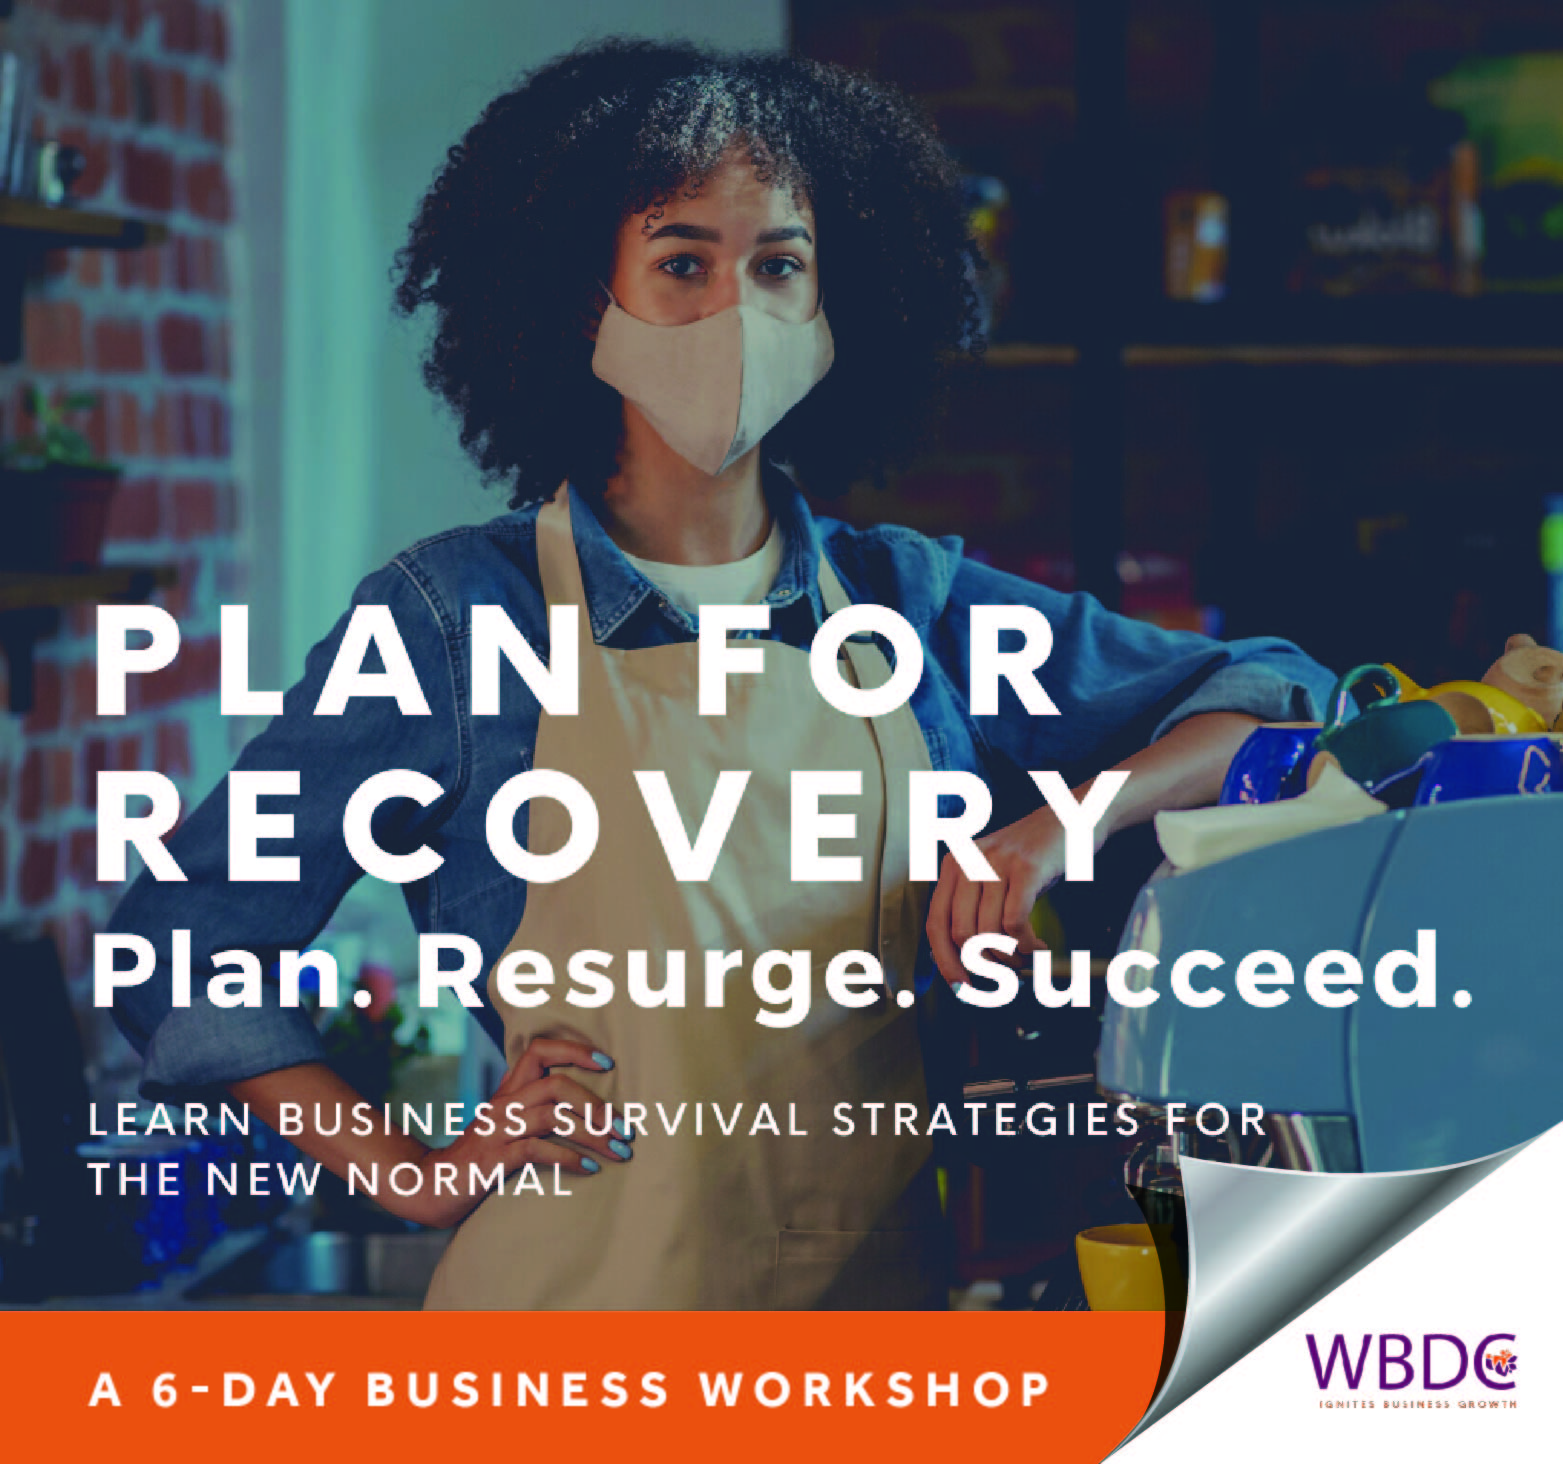 WBDC: Start Planning Your Business for Recovery in 2021